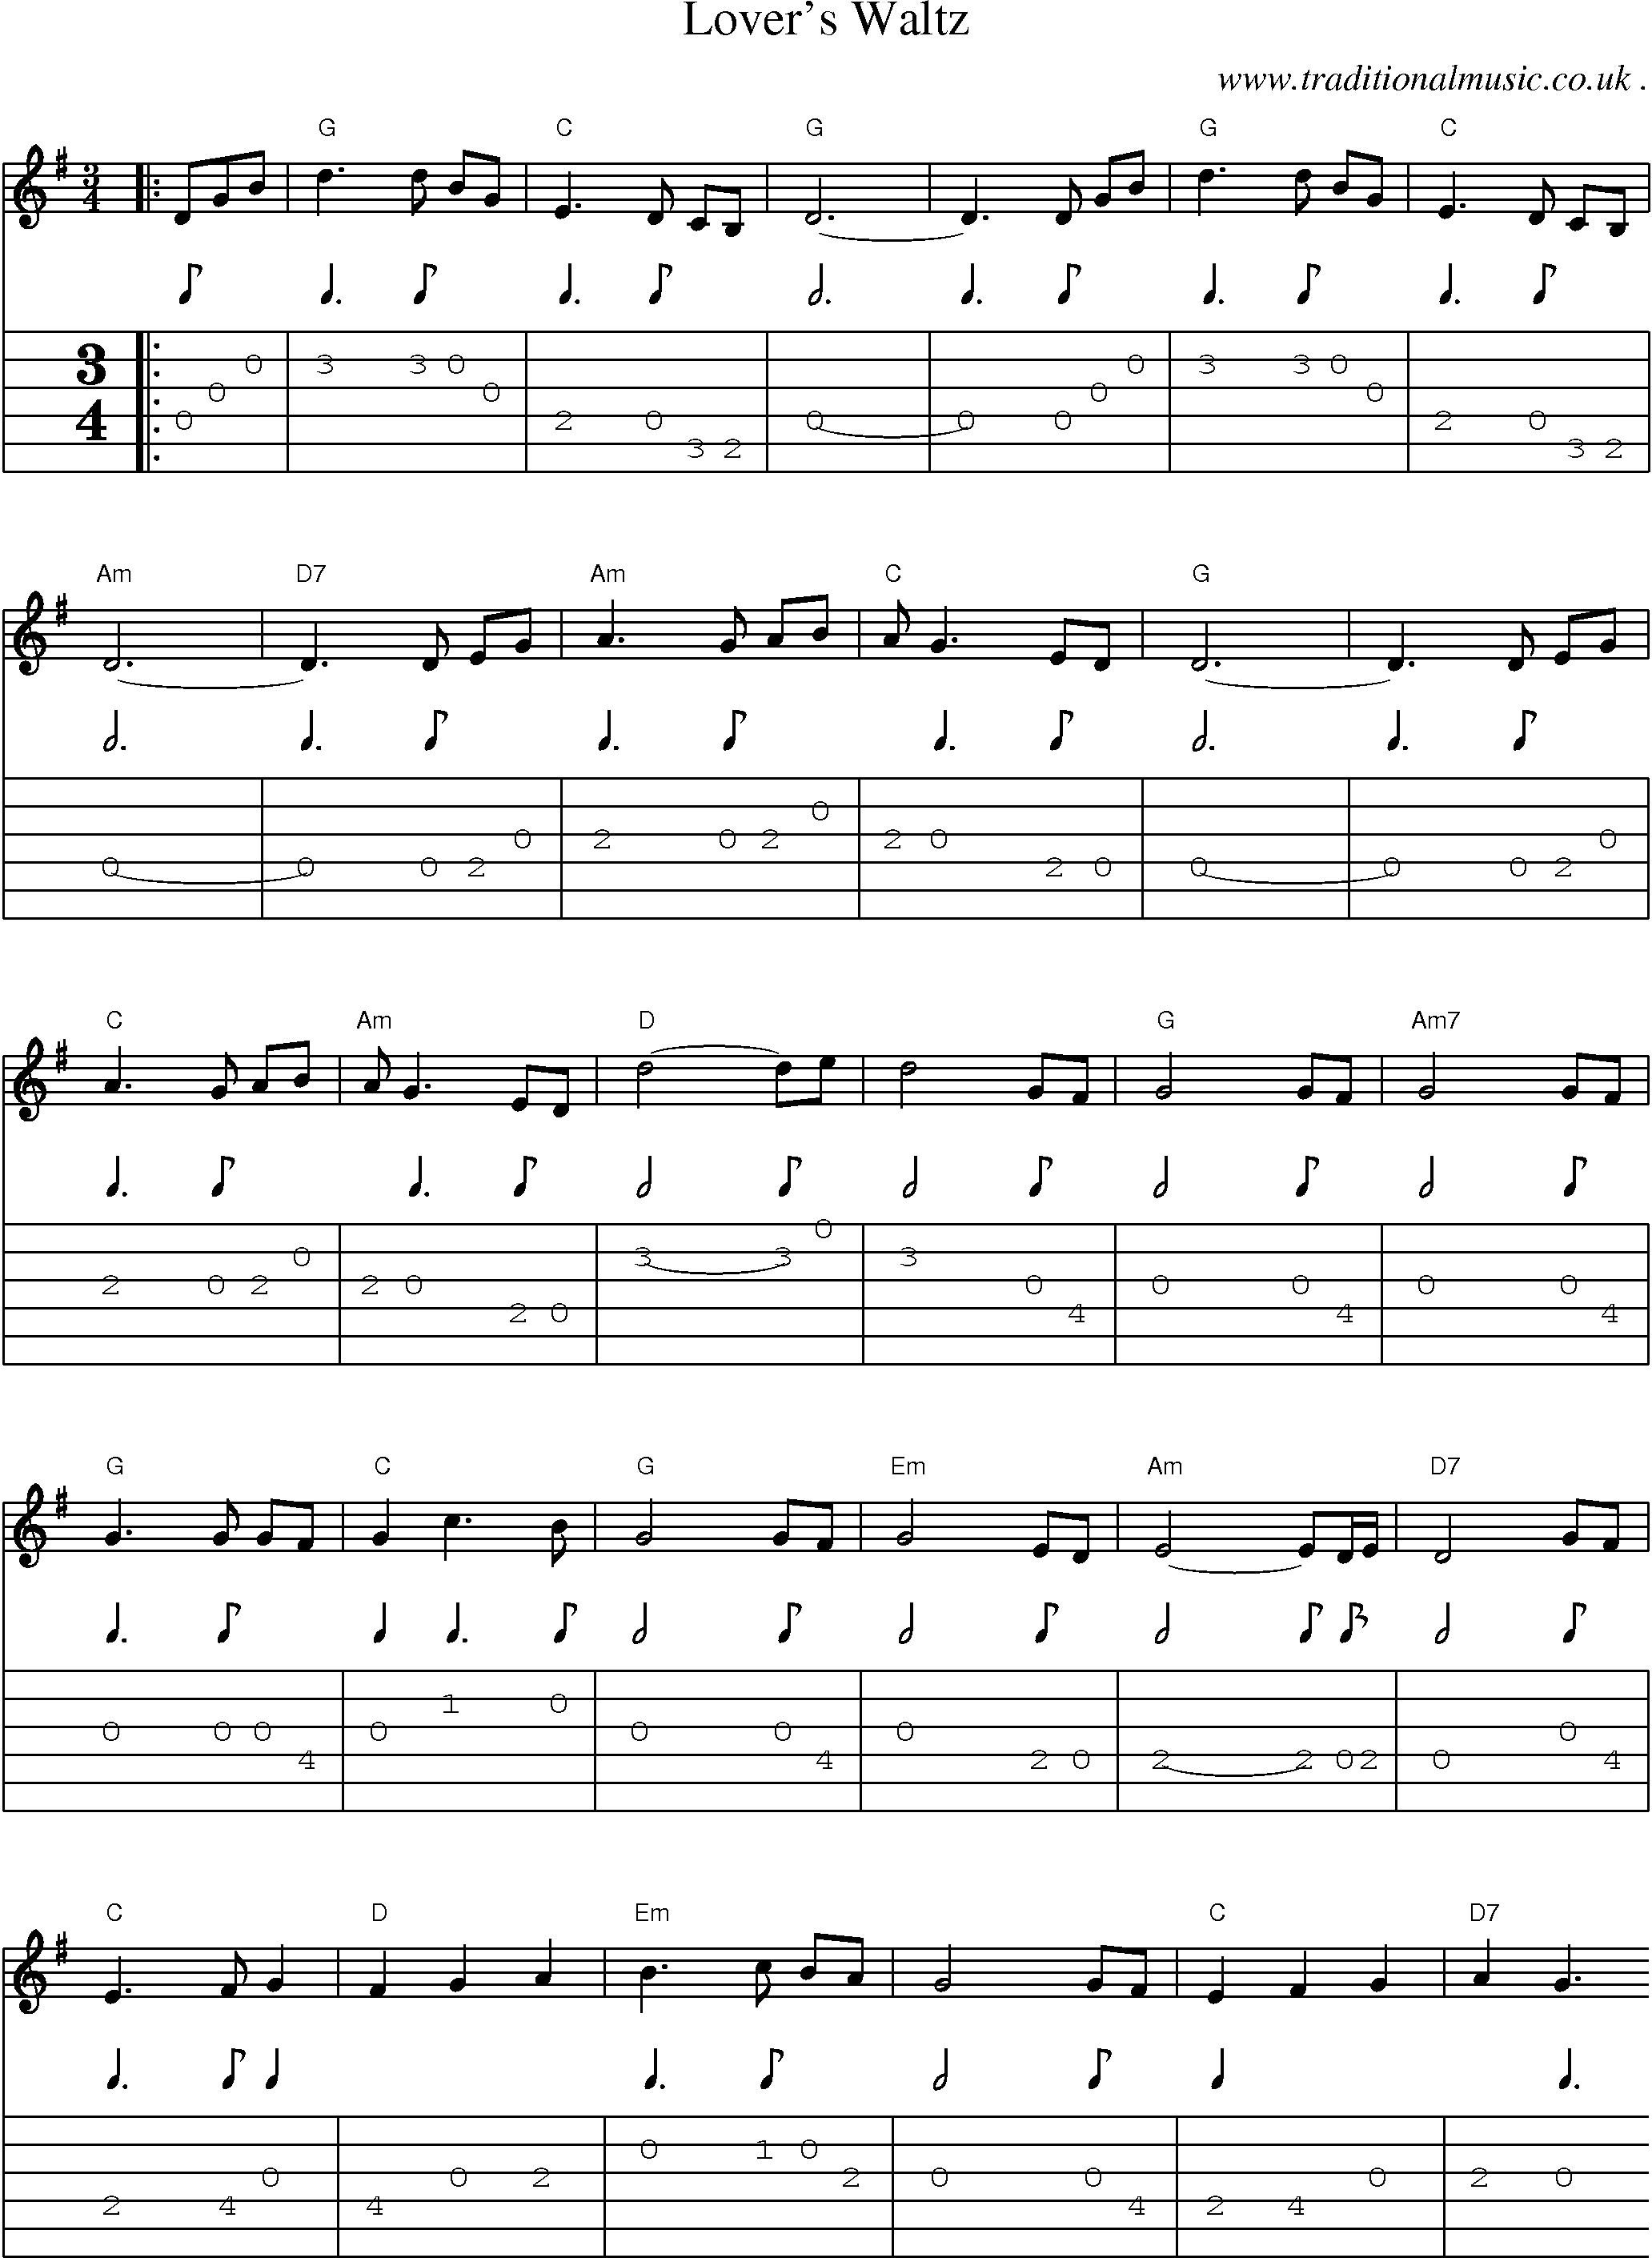 American Old Time Music Scores And Tabs For Guitar Lovers Waltz